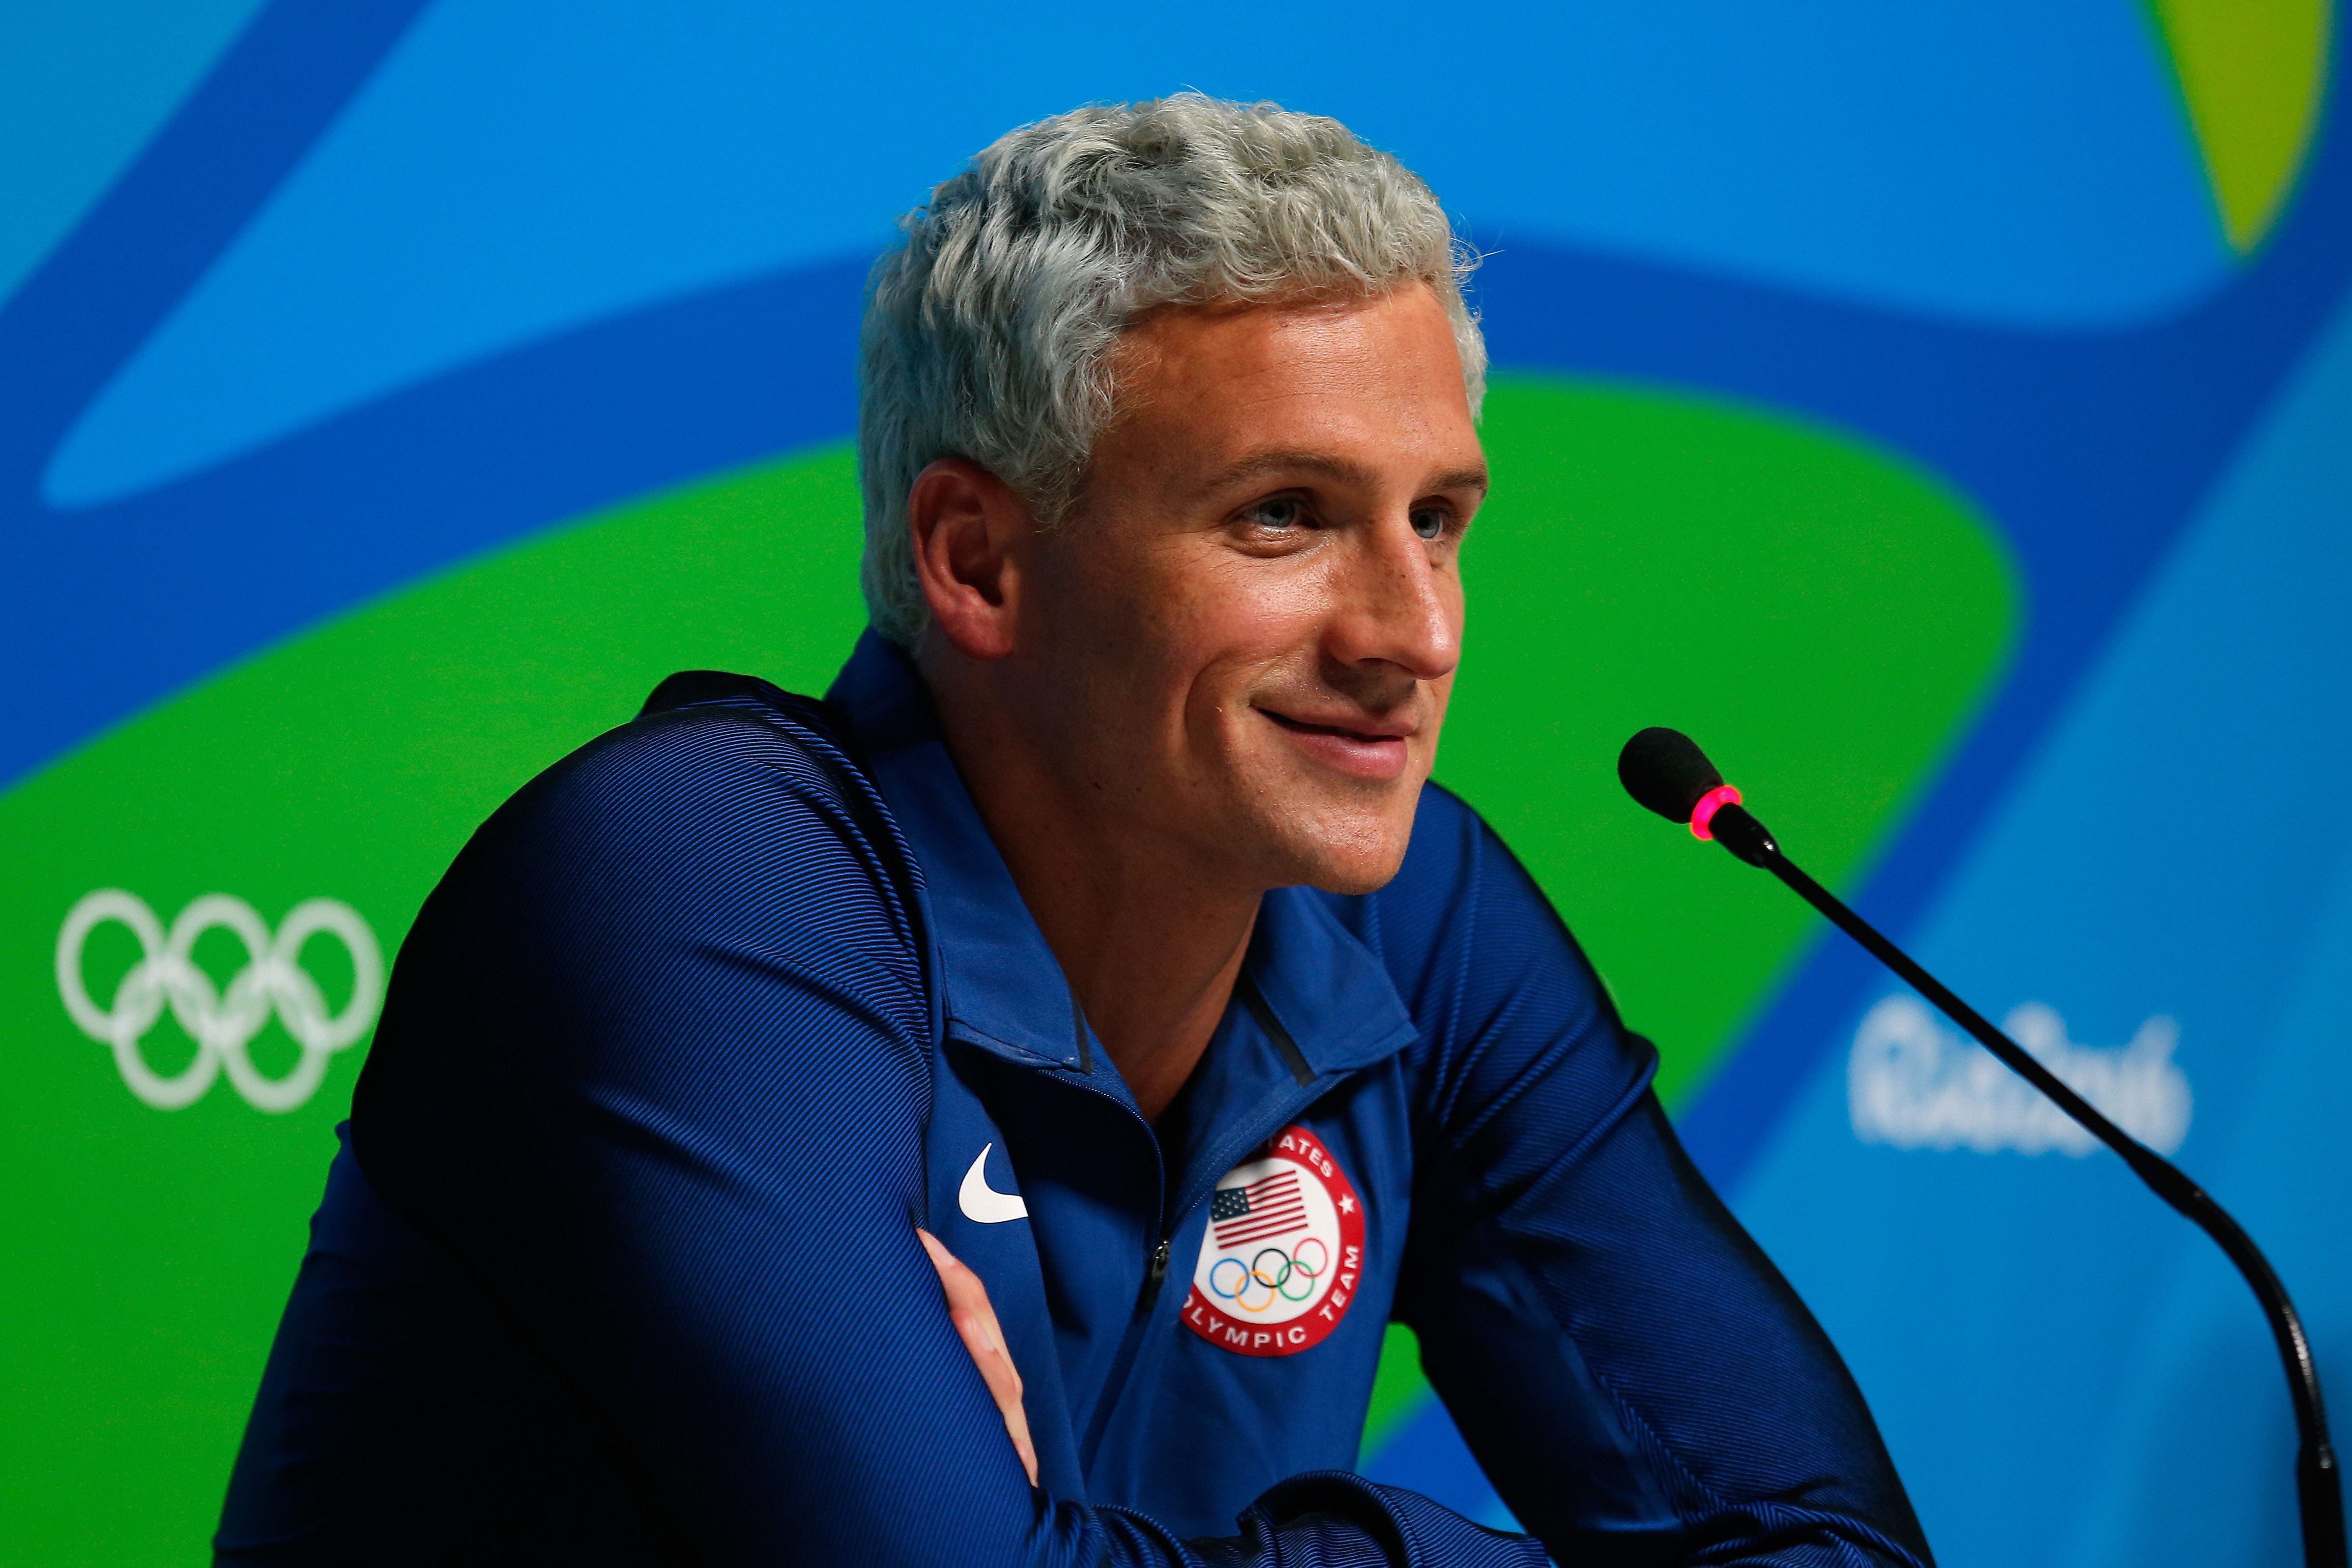 Ryan Lochte and three other Olympic swimmers have been criticized for fabricating a story about being robbed in Rio.